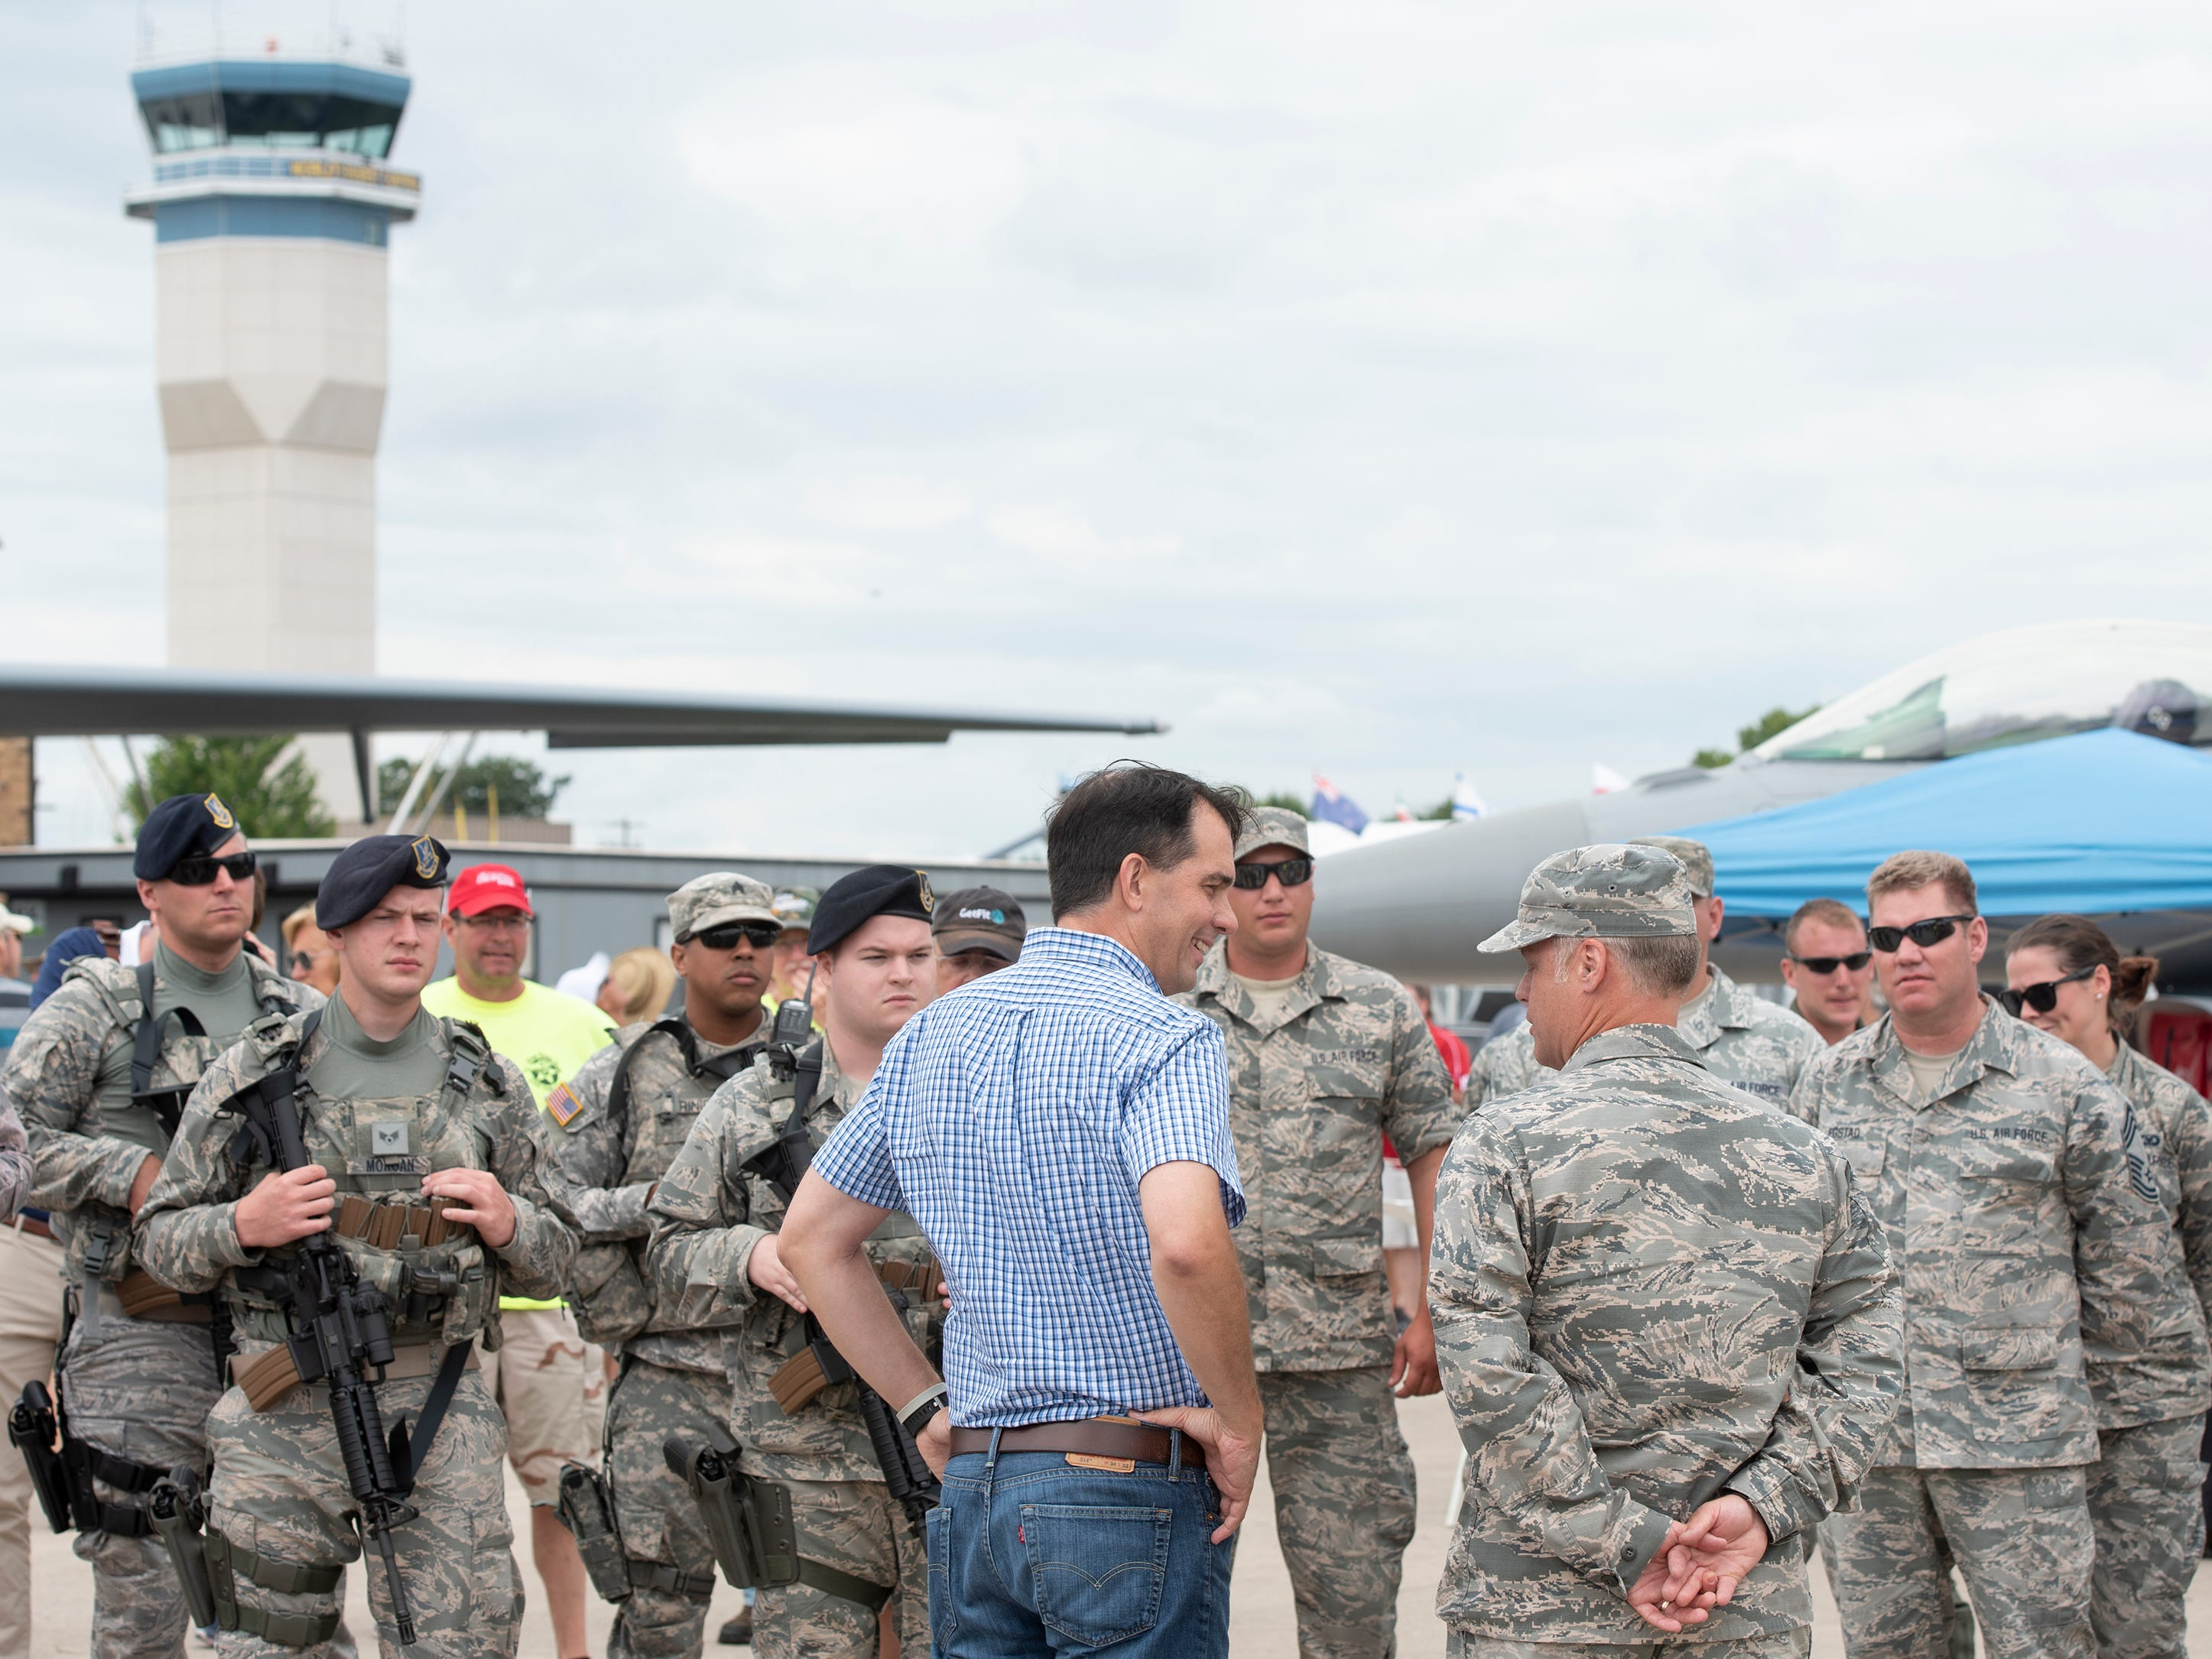 Gov. Scott Walker speaks with members of the Wisconsin Air National Guard in Boeing Plaza at AirVenture in Oshkosh, Wis., on Thursday, July 26, 2018. Walker then toured a 128th Air Refueling Wing parked nearby.